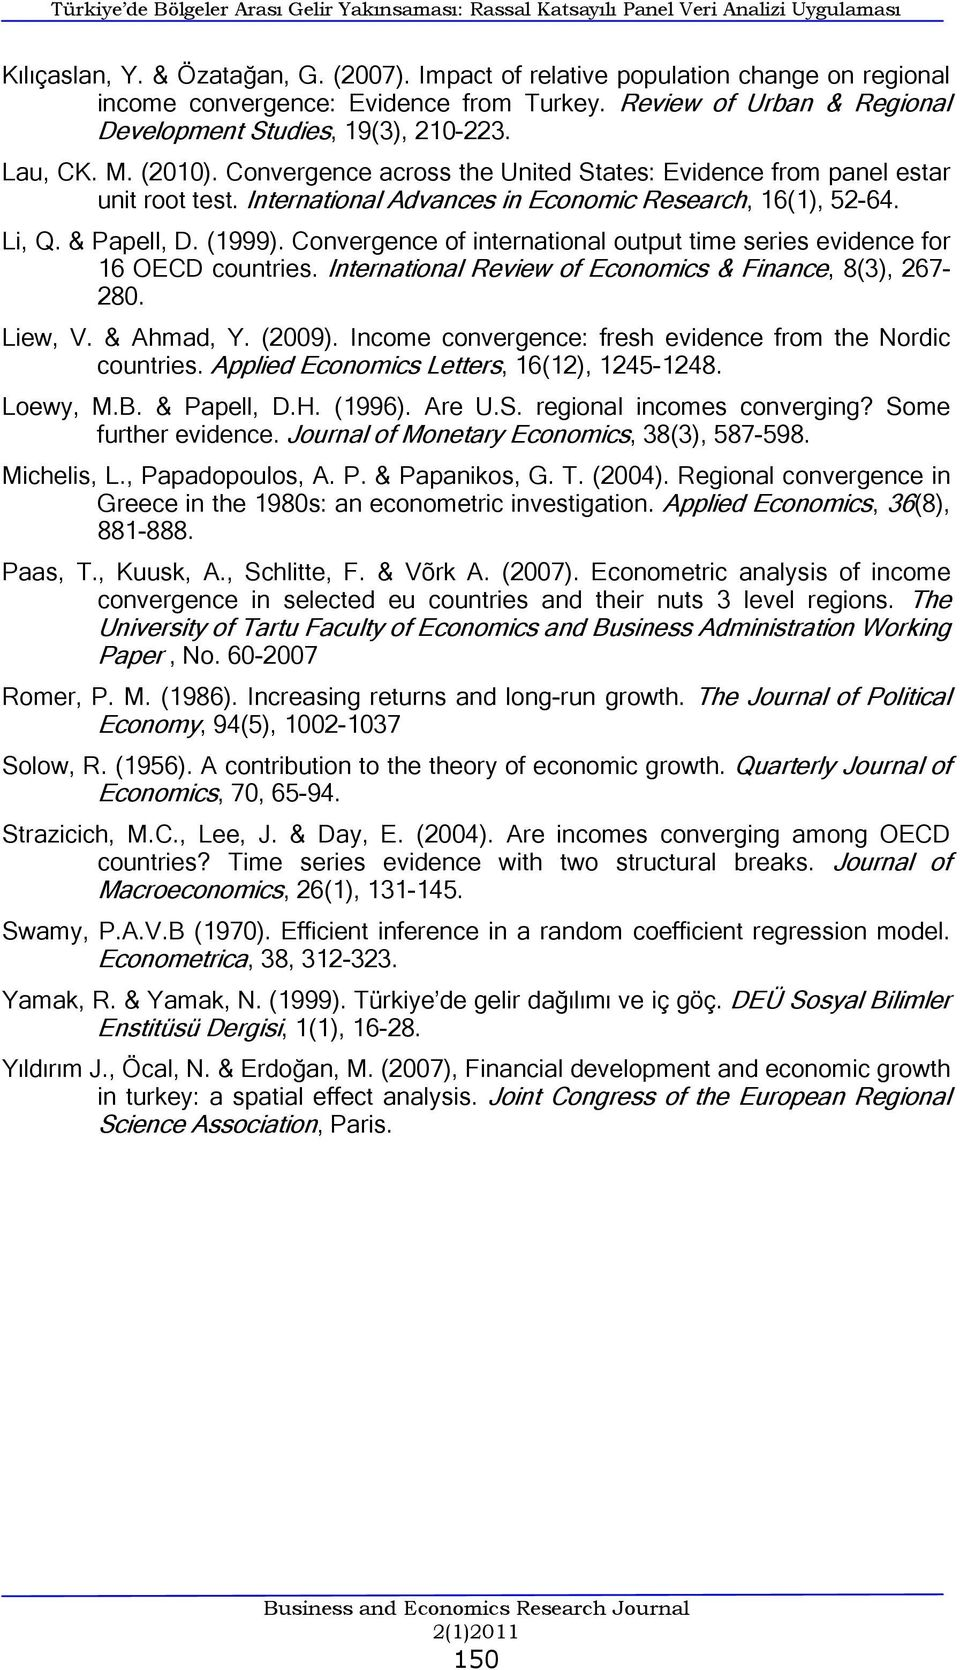 Convergence across the Unted States: Evdence from panel estar unt root test. Internatonal Advances n Economc Research, 16(1), 52-64. L, Q. & Papell, D. (1999).